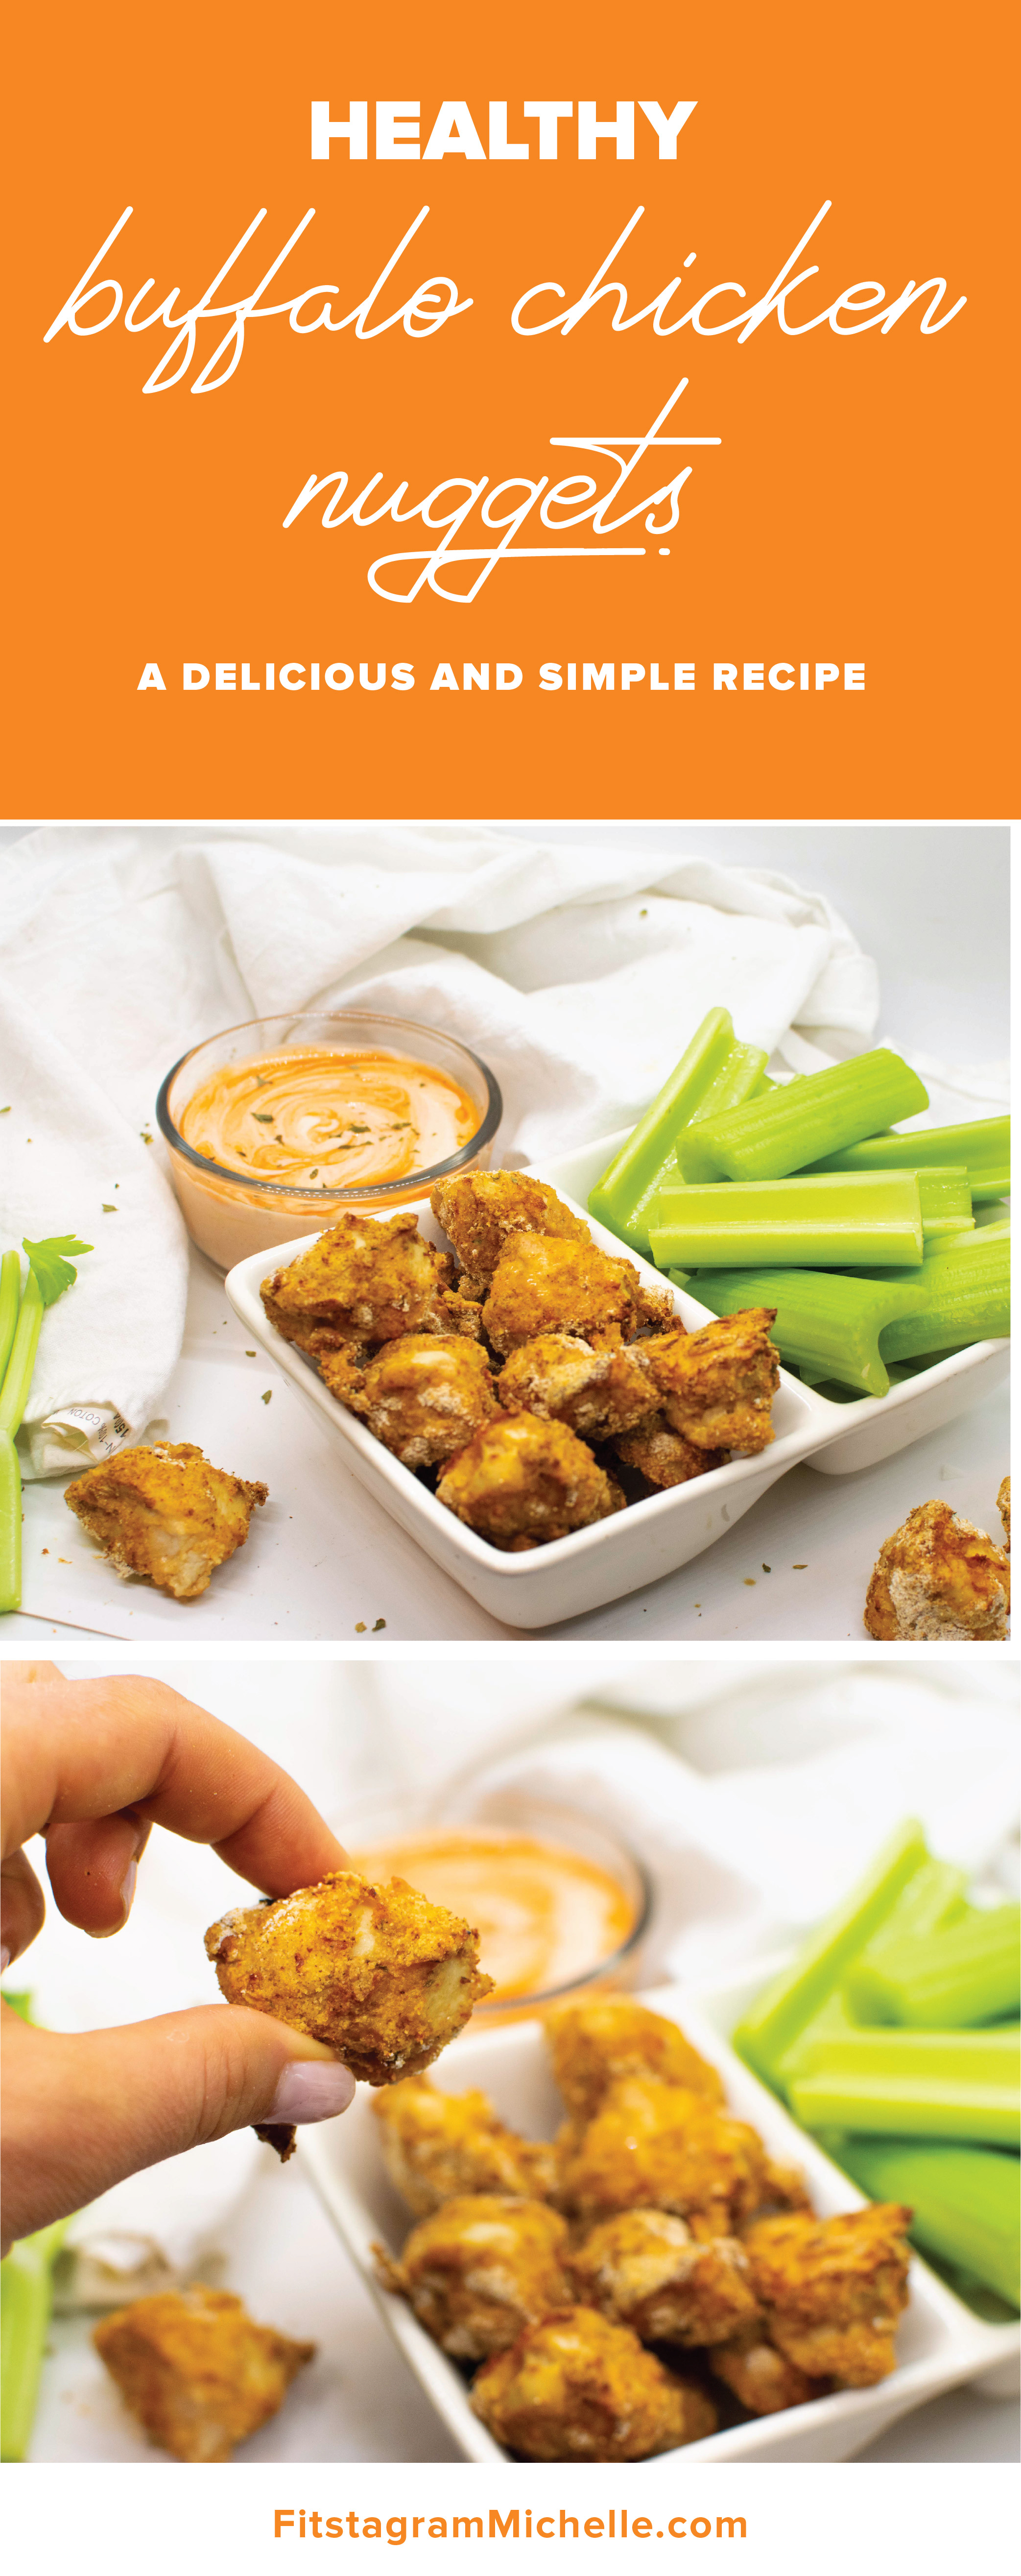 Healthy Buffalo Chicken Nuggets - a simple and delicious recipe that is a childhood favorite recreated to be adult!